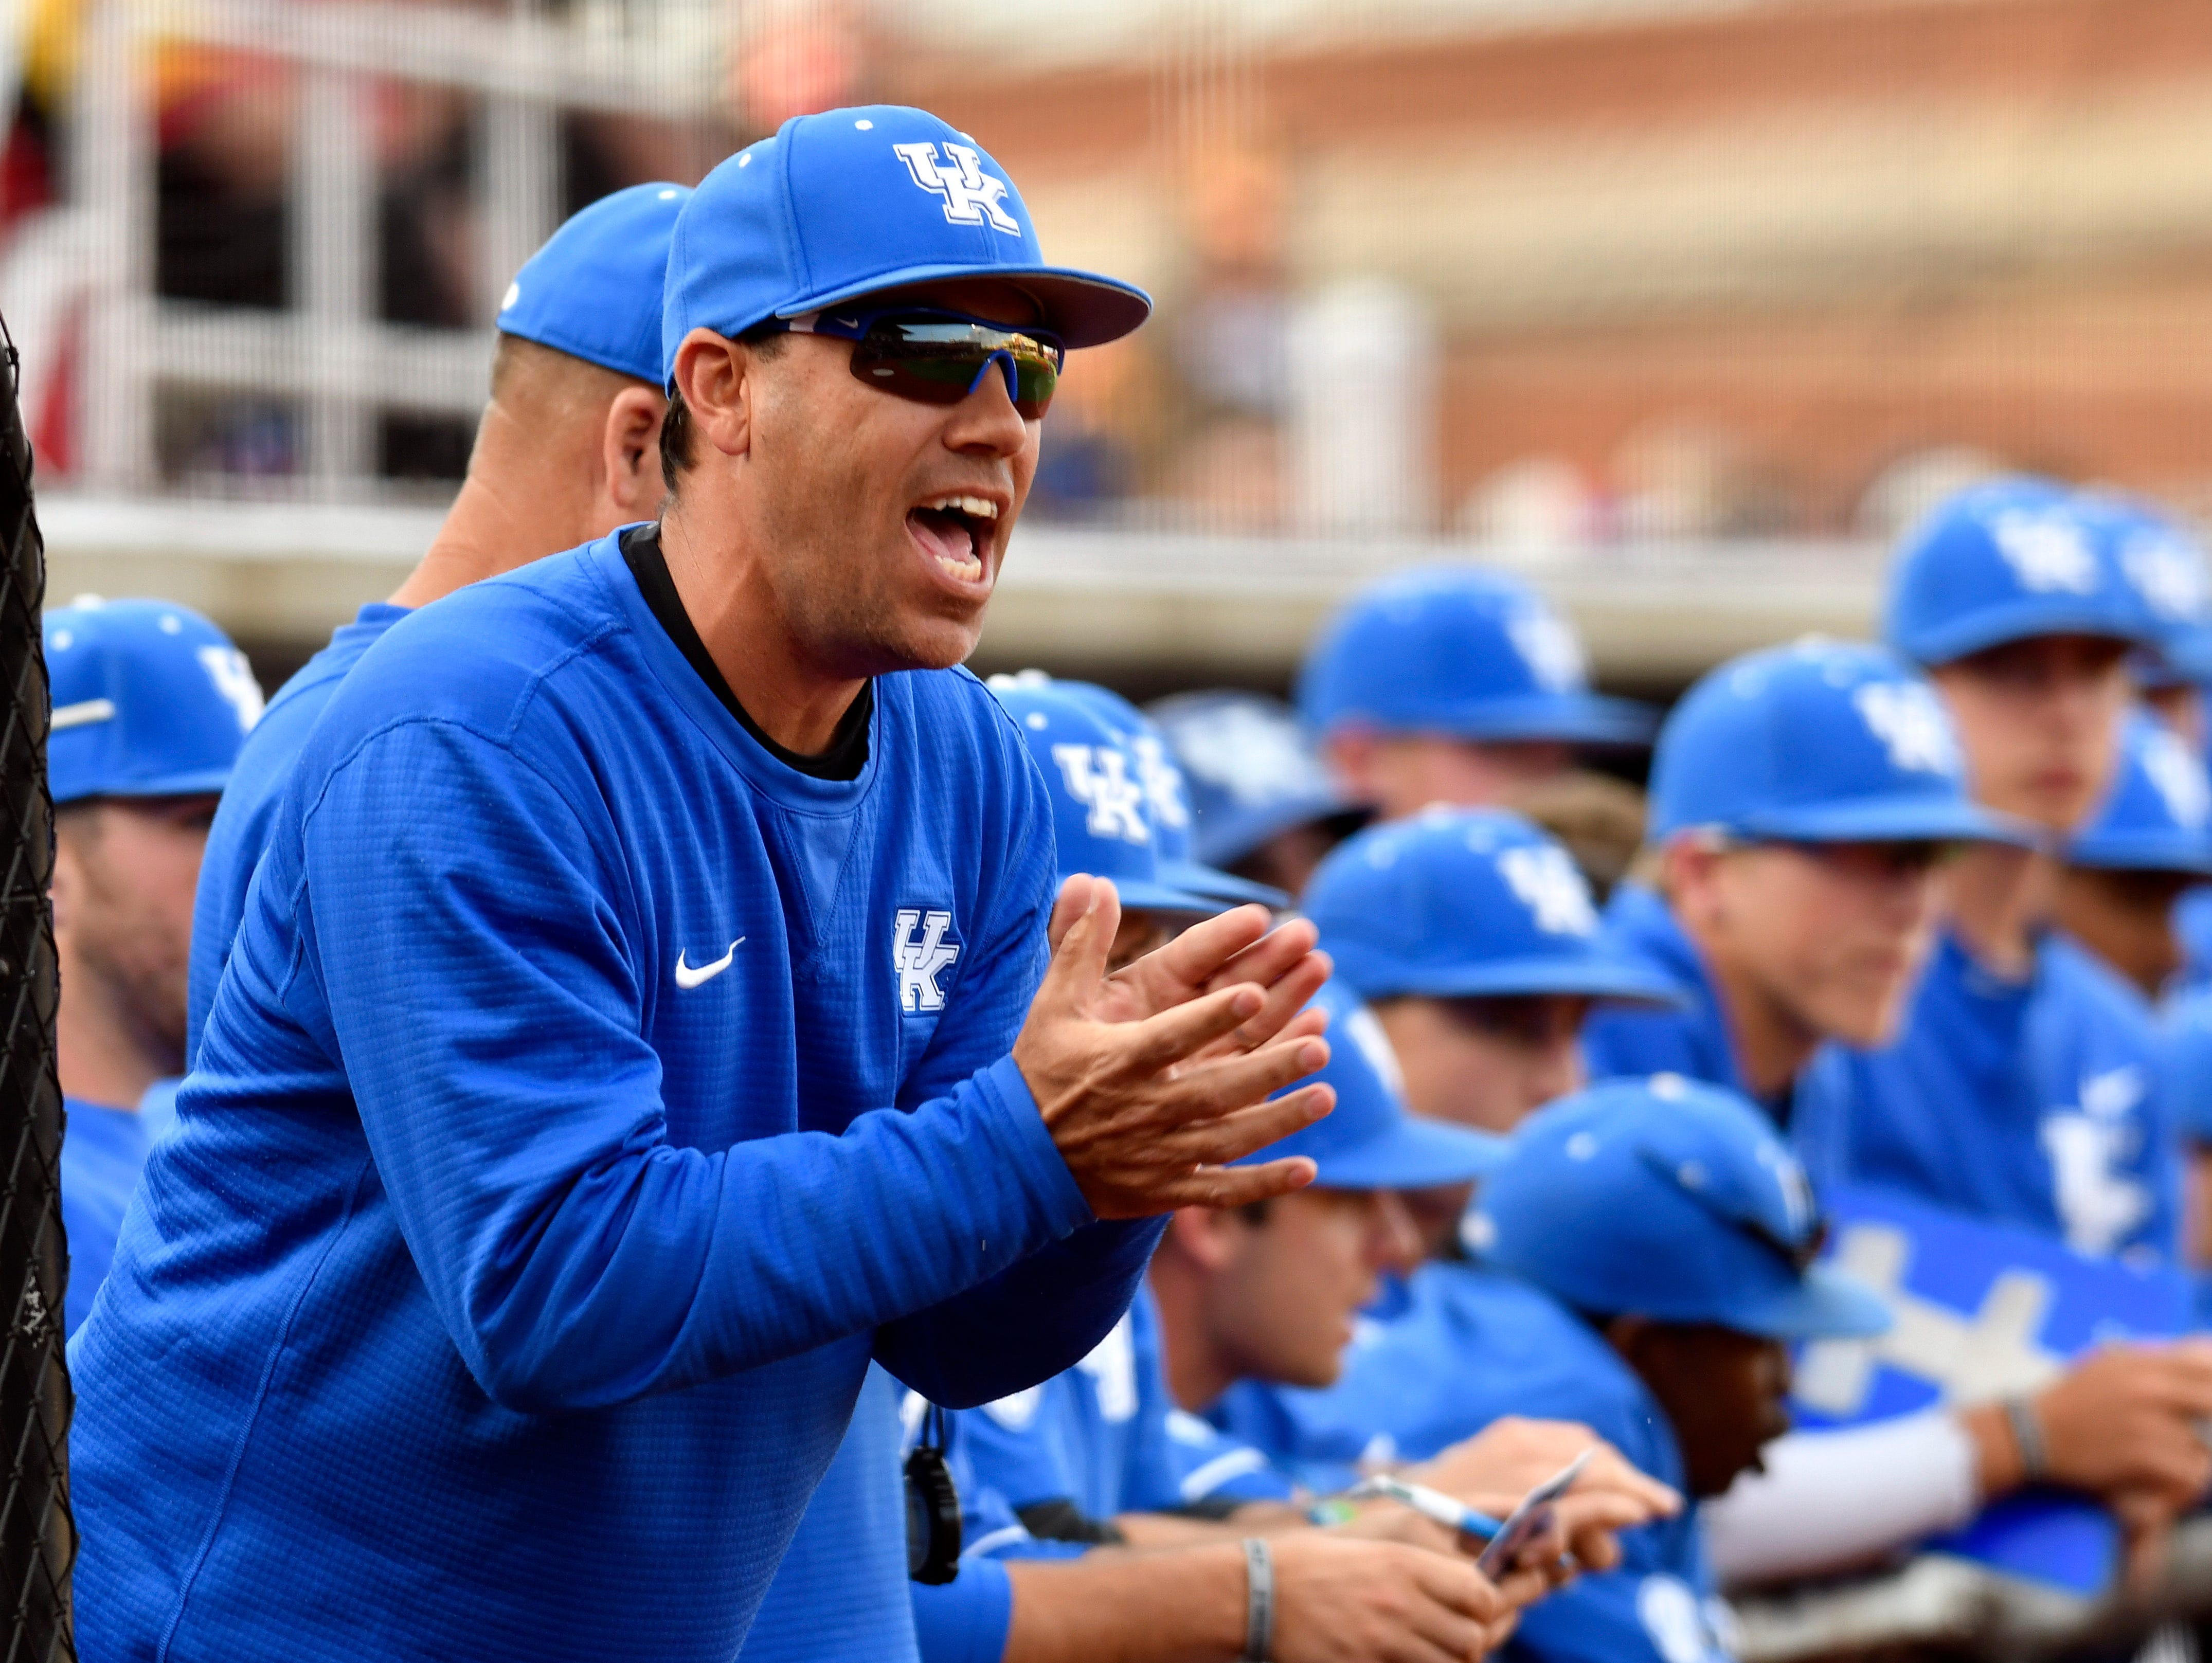 Kentucky head coach Nick Mingione cheers on his team during their game against Louisville Jim Patterson Stadium, Tuesday, April. 4, 2017 in Louisville Ky.